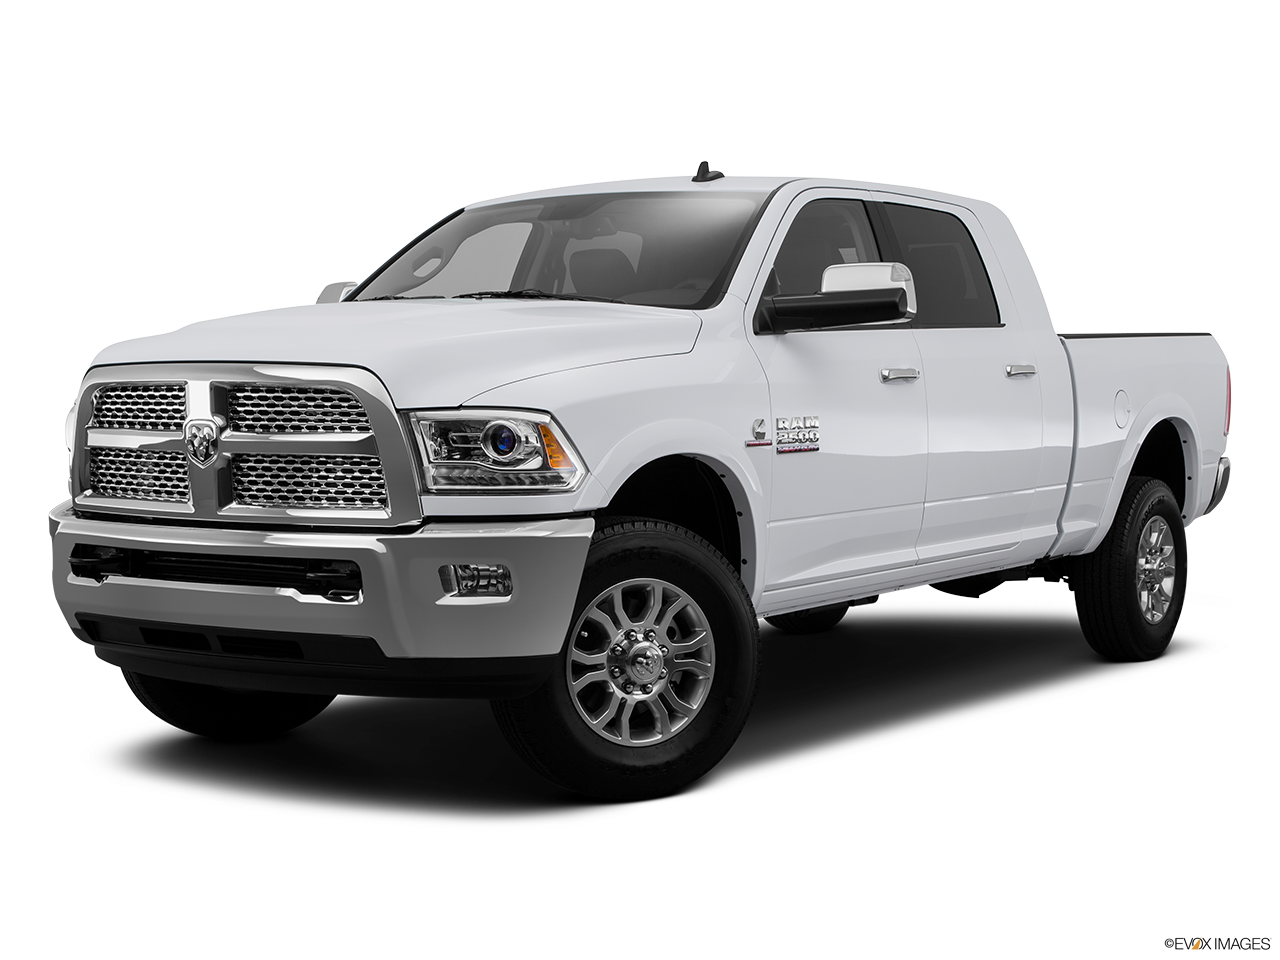 2015 ram 2500 dealer serving san diego carl burger dodge chrysler jeep ram. Black Bedroom Furniture Sets. Home Design Ideas